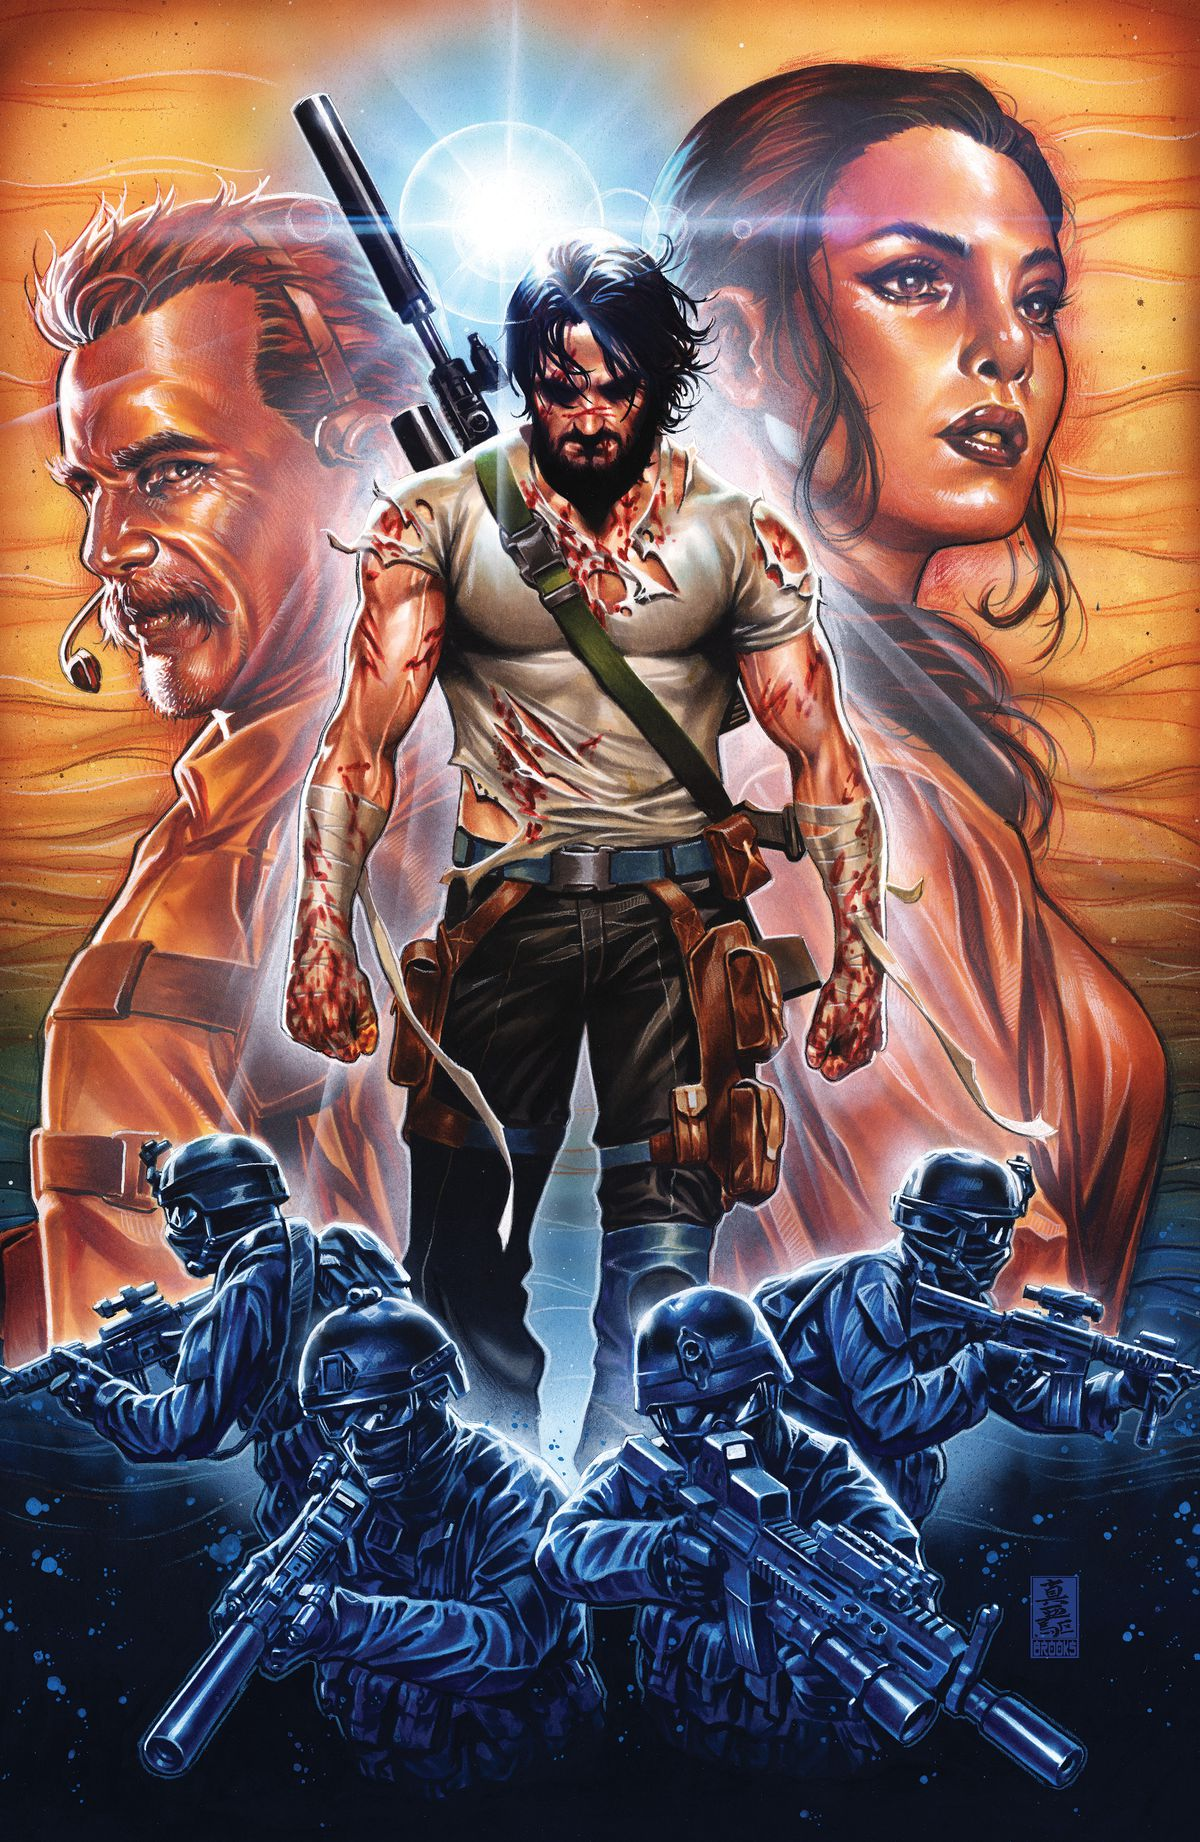 B walking like Wolverine on a cover with tons of character faces for BRZRKR